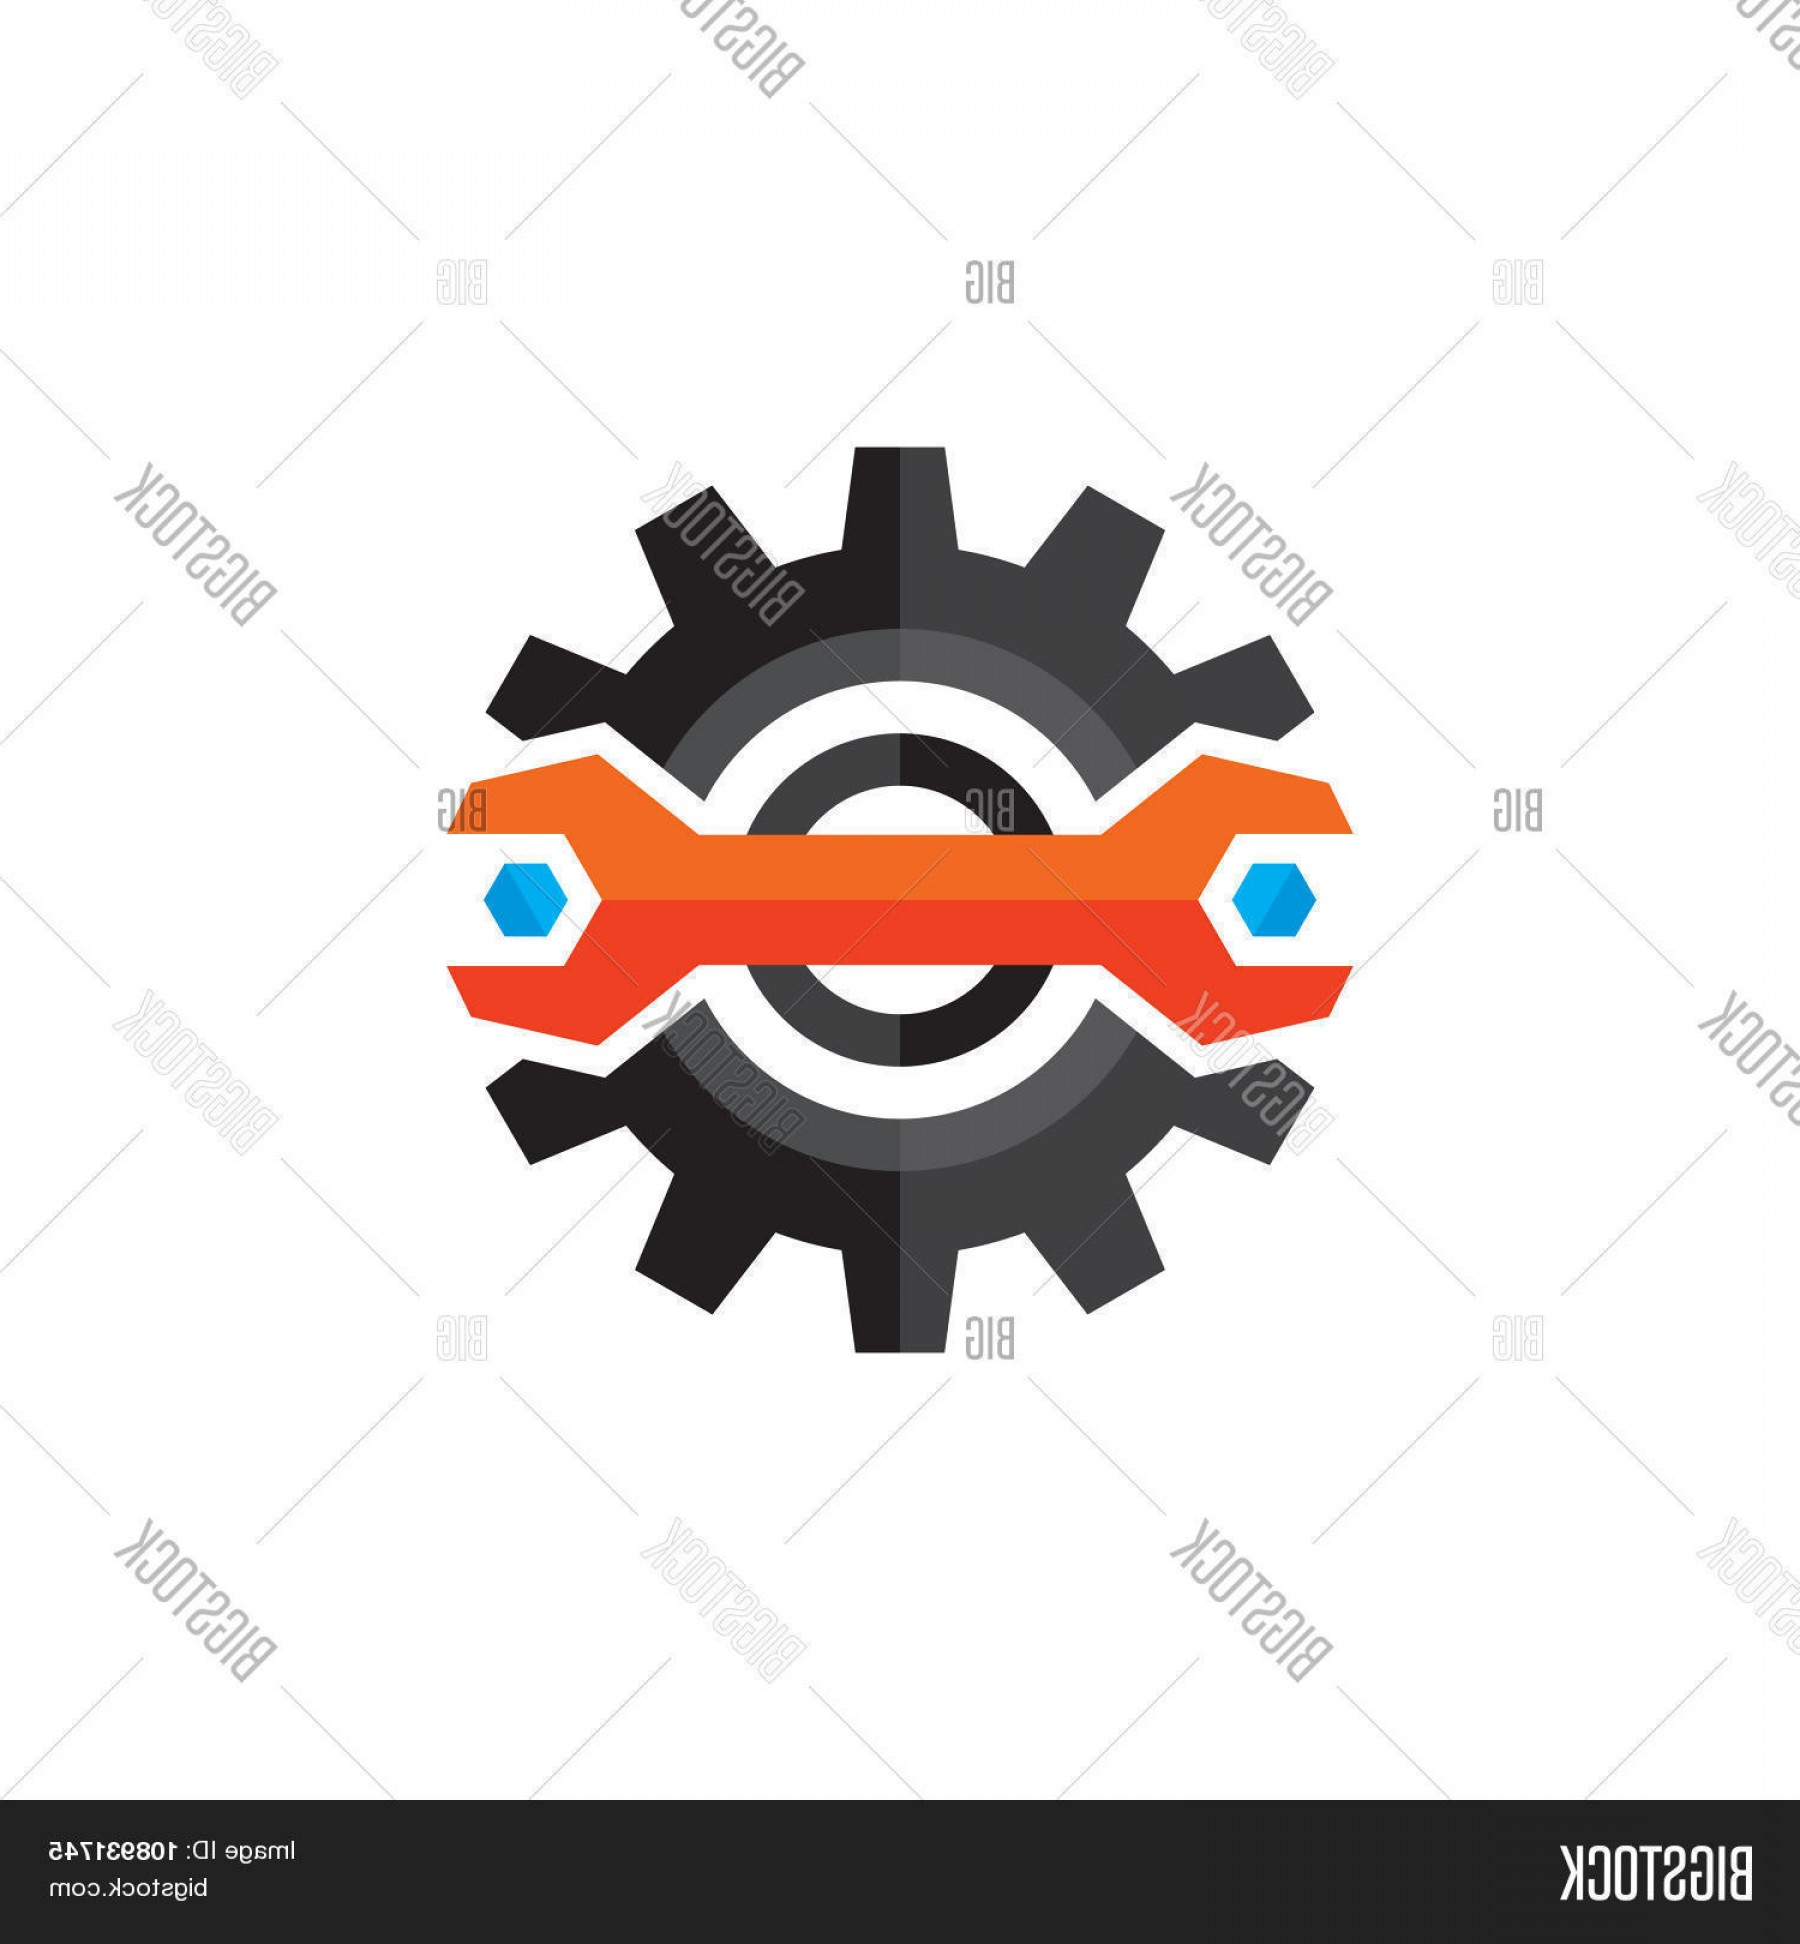 Gear Vector Icons Large: Stock Vector Gear Vector Logo Gear And Wrench Icon Sign In Flat Style Design Gear Flat Icon